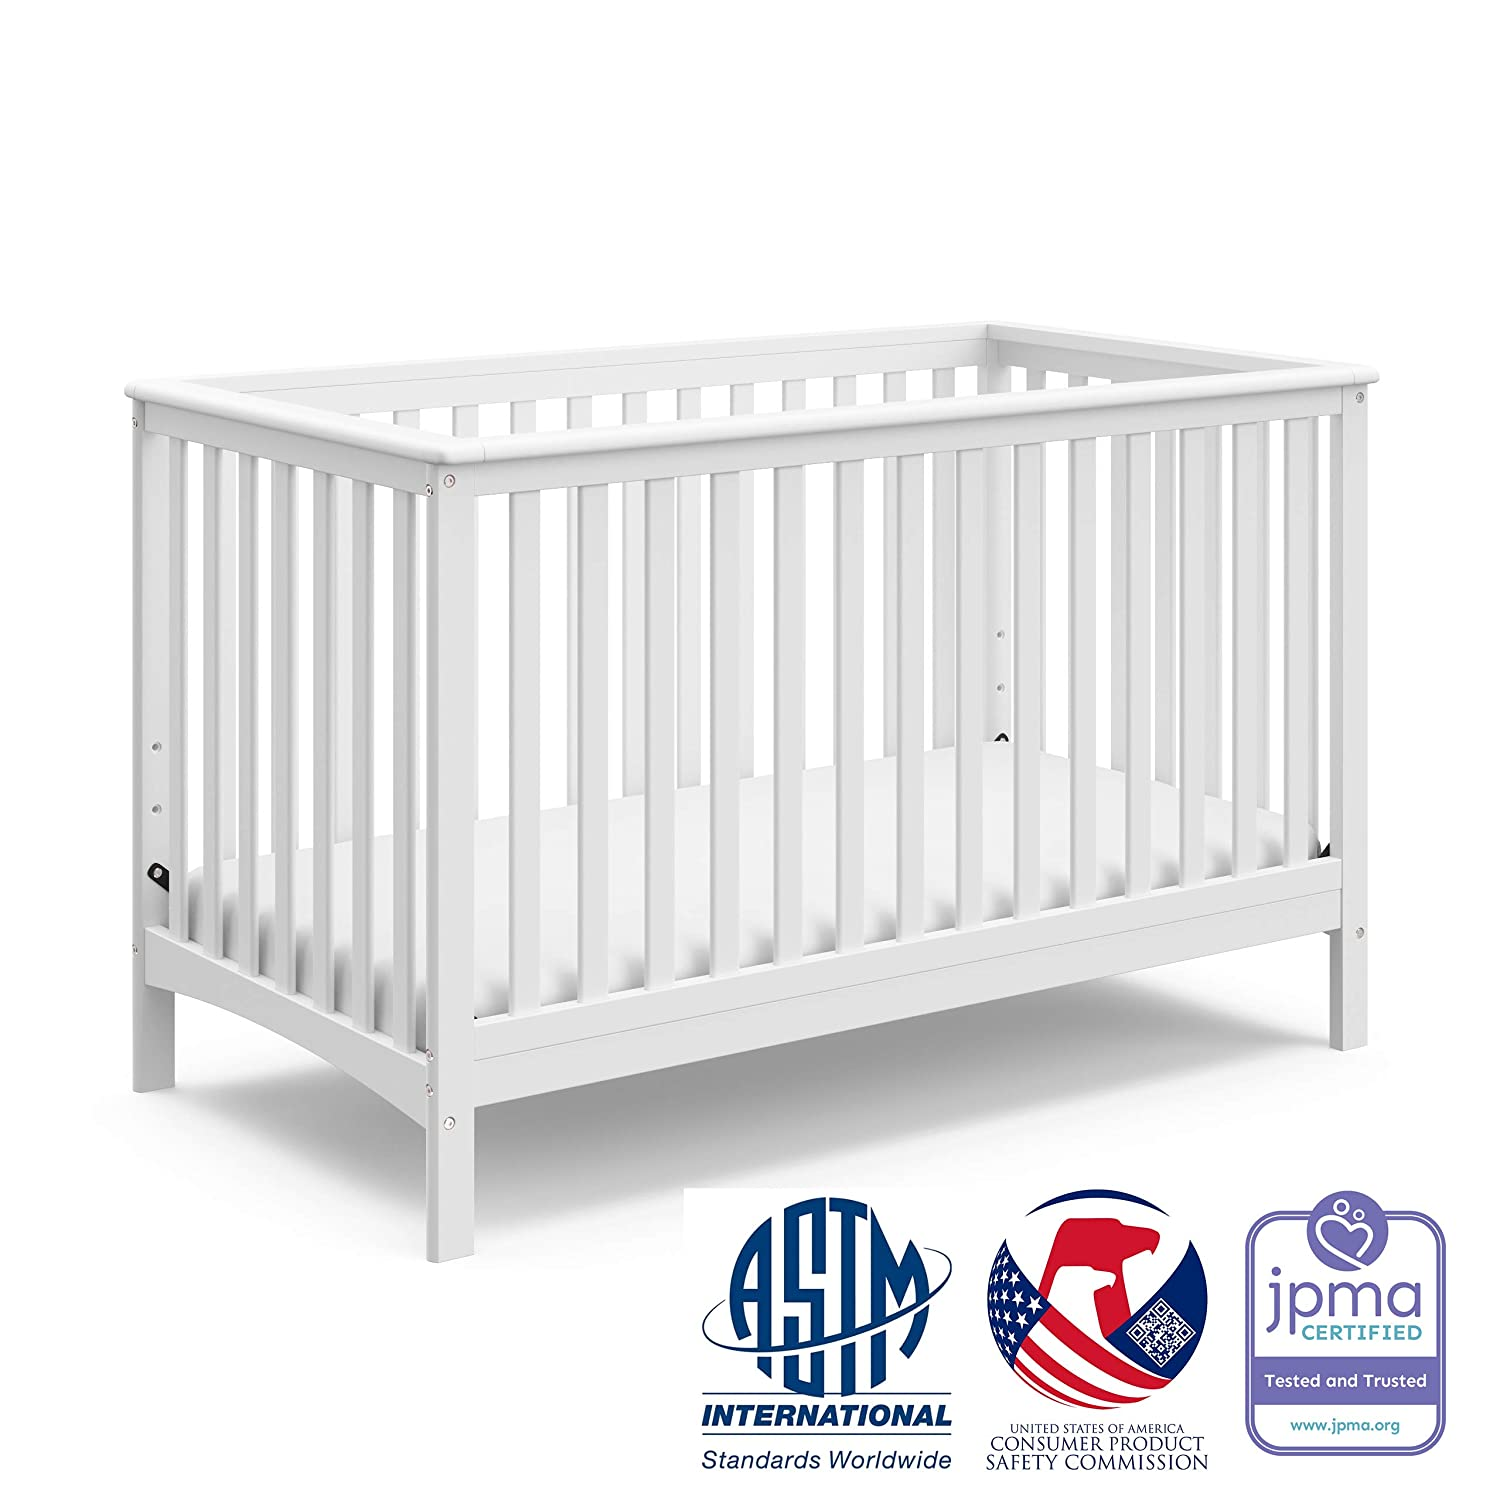 Storkcraft Hillcrest Fixed Side Convertible Crib, White, Easily Converts to Toddler Bed Day Bed or Full Bed, Three Position Adjustable Height Mattress, Some Assembly Required Mattress Not Included